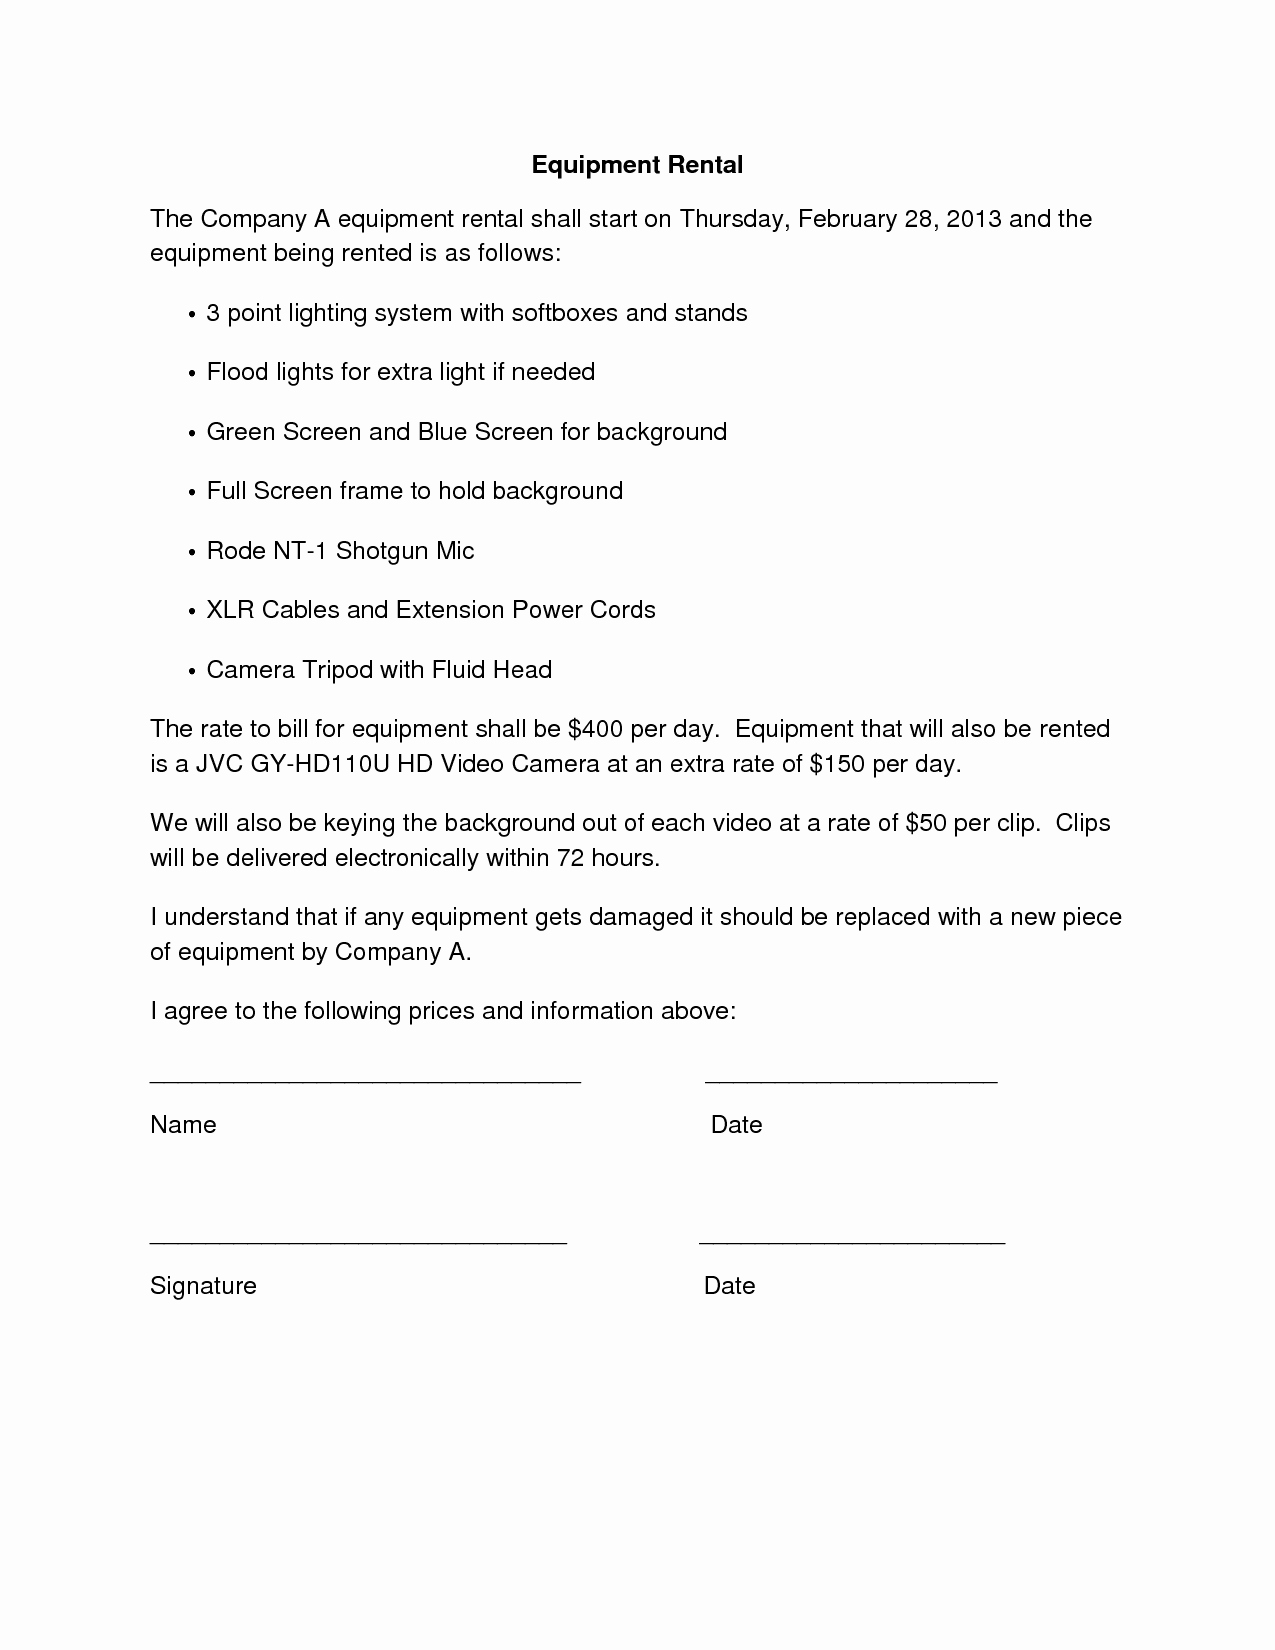 Equipment Rental Agreement Template Fresh 10 Best Of Simple Agreements Letters Template